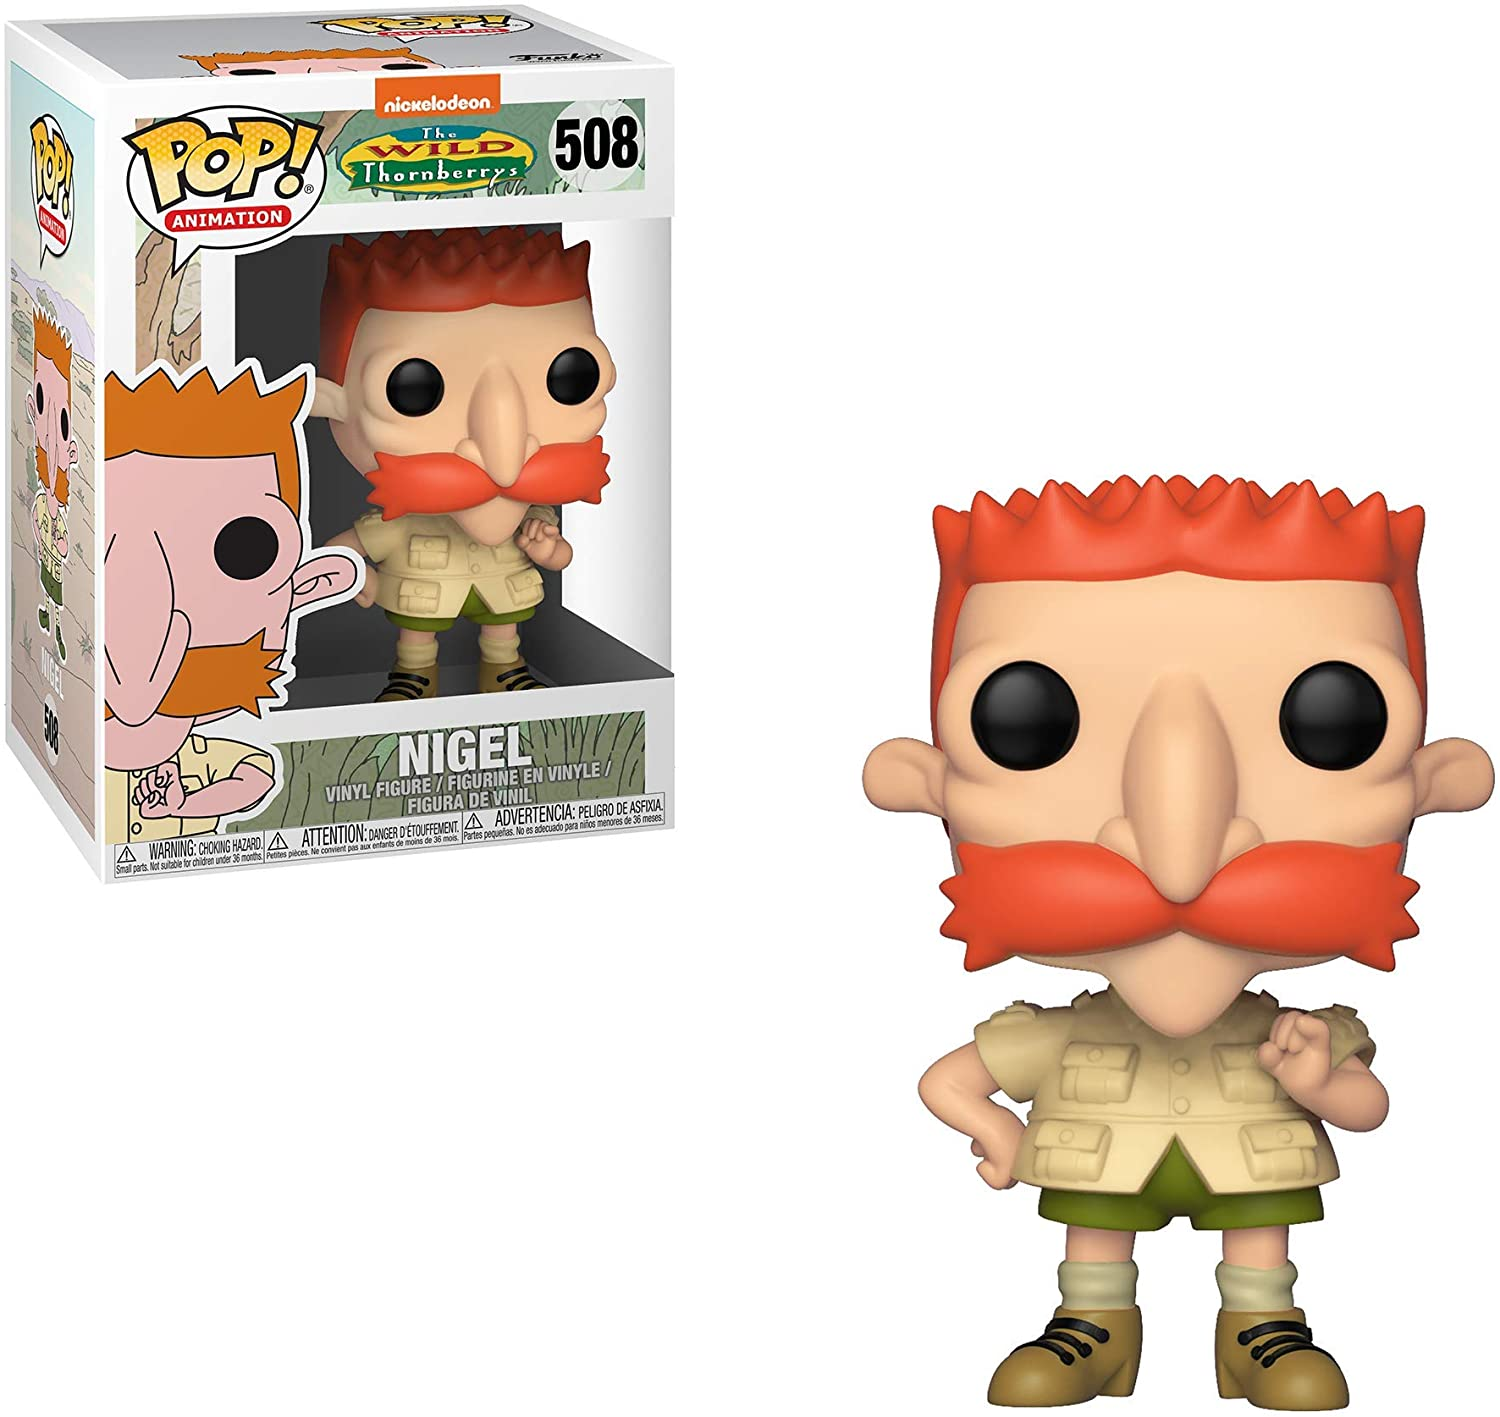 Funko Pop! Nigel Thornberry: Thornberry #508 - Funko